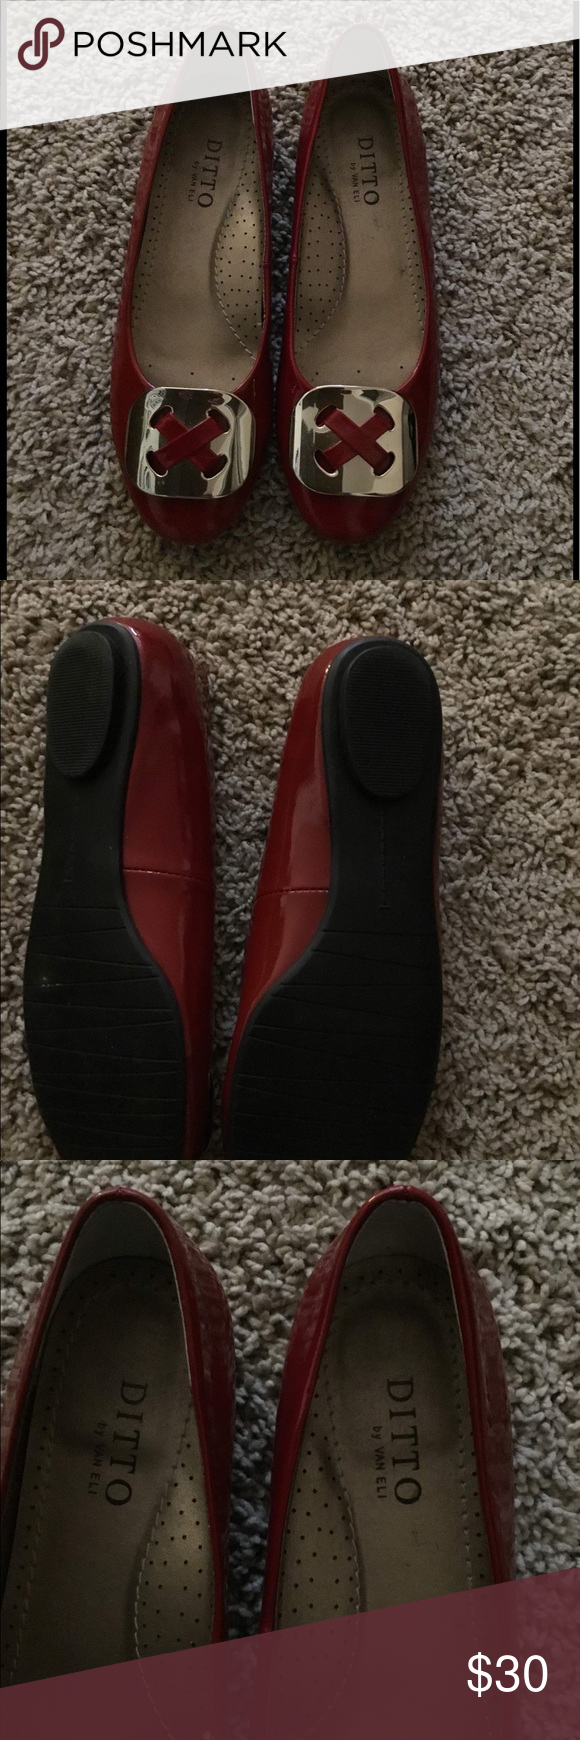 a01e25d3998 Ditto by Van Eli flats Beautiful deep red flats. Never worn however no  original box. Smoke free home. Reasonable offers welcomed!